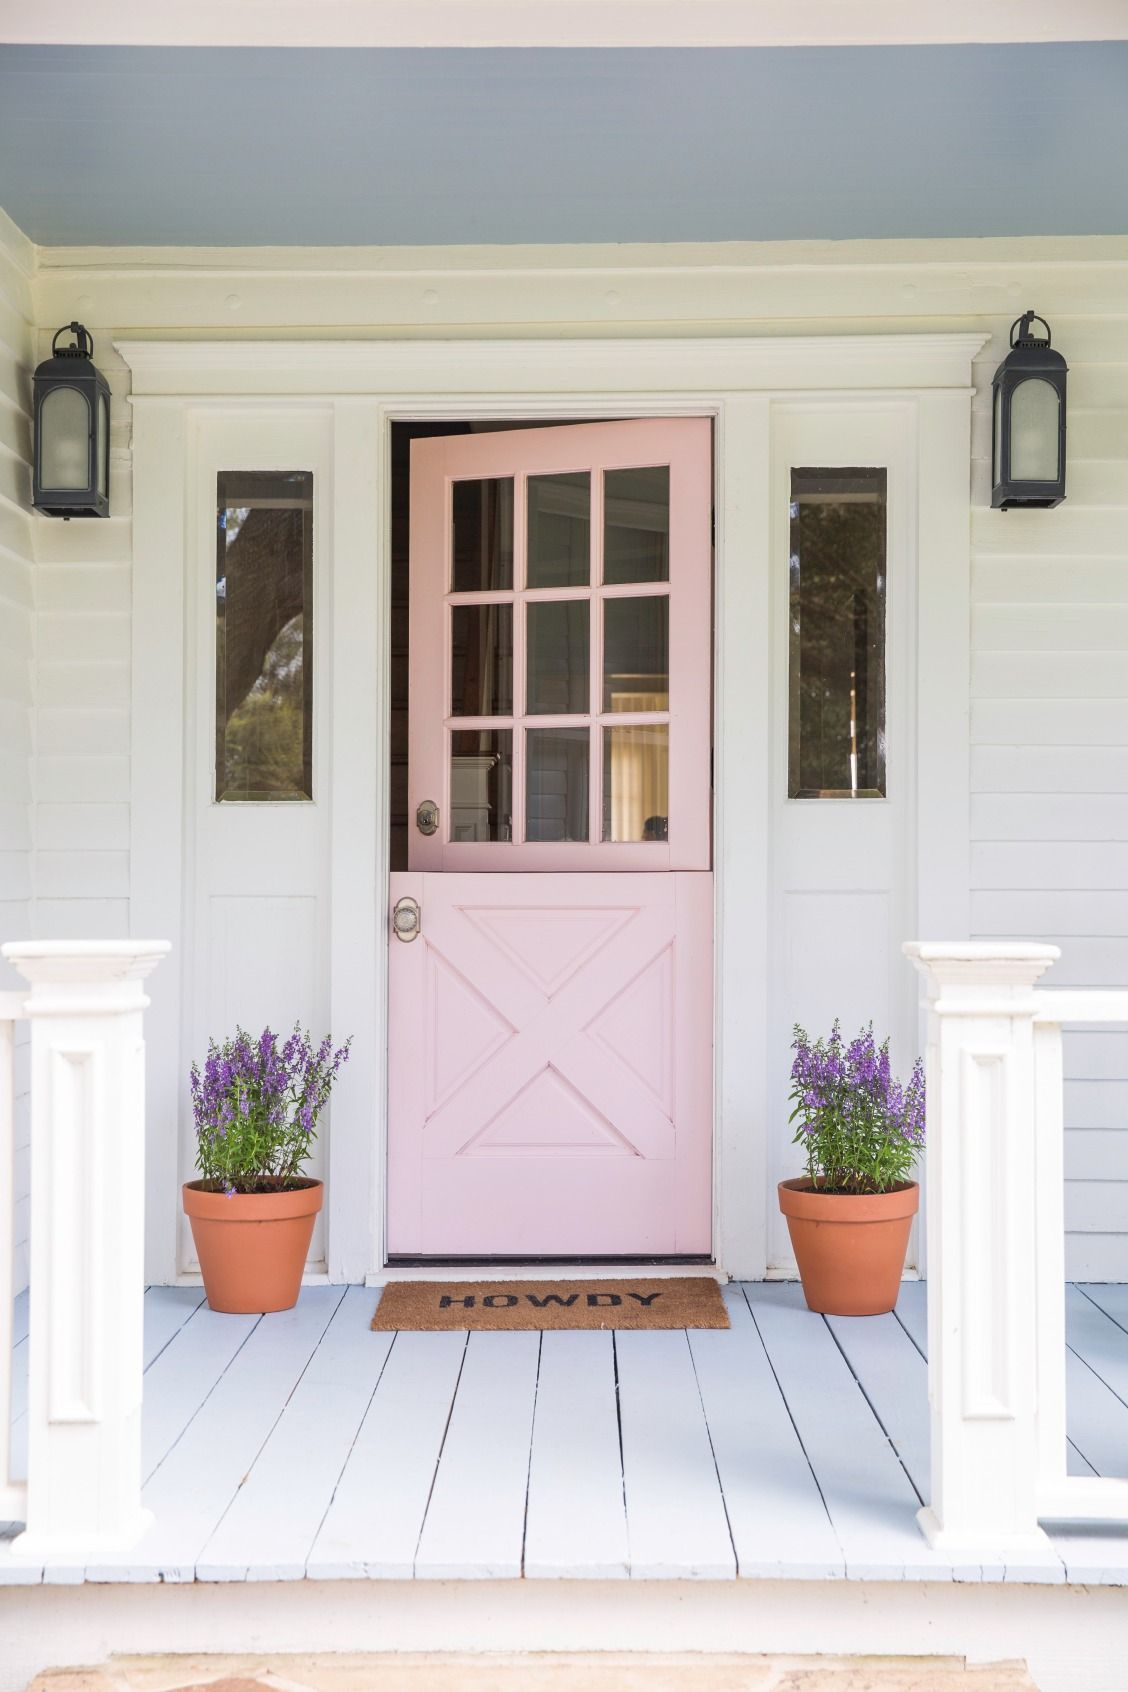 These fun front door ideas will seriously boost your curb appeal!